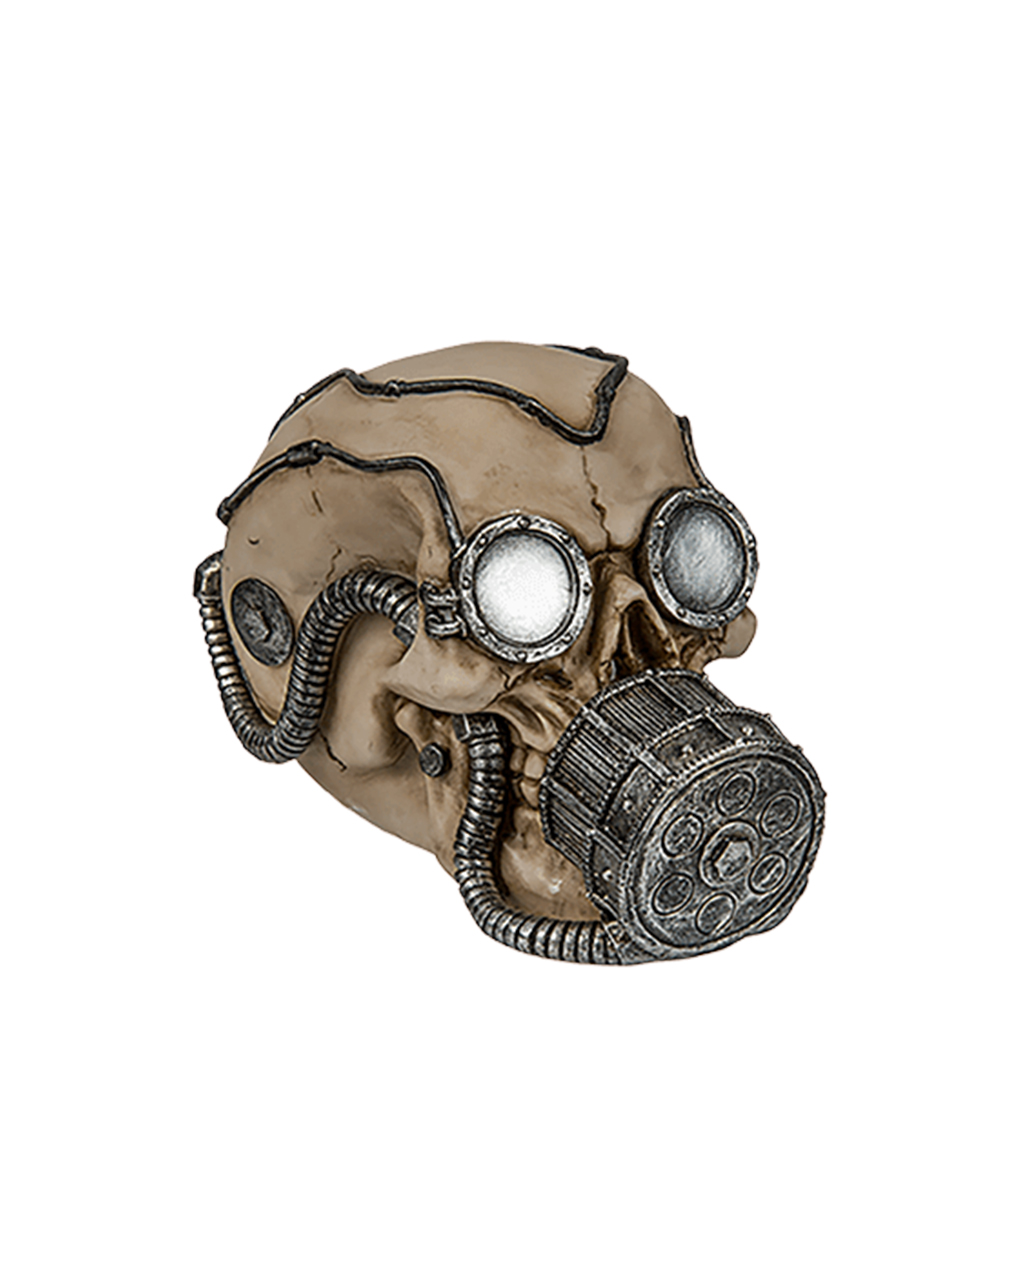 Masquerade Mask New Copper Steampunk Eye Scope Skull Men Halloween Costume Party